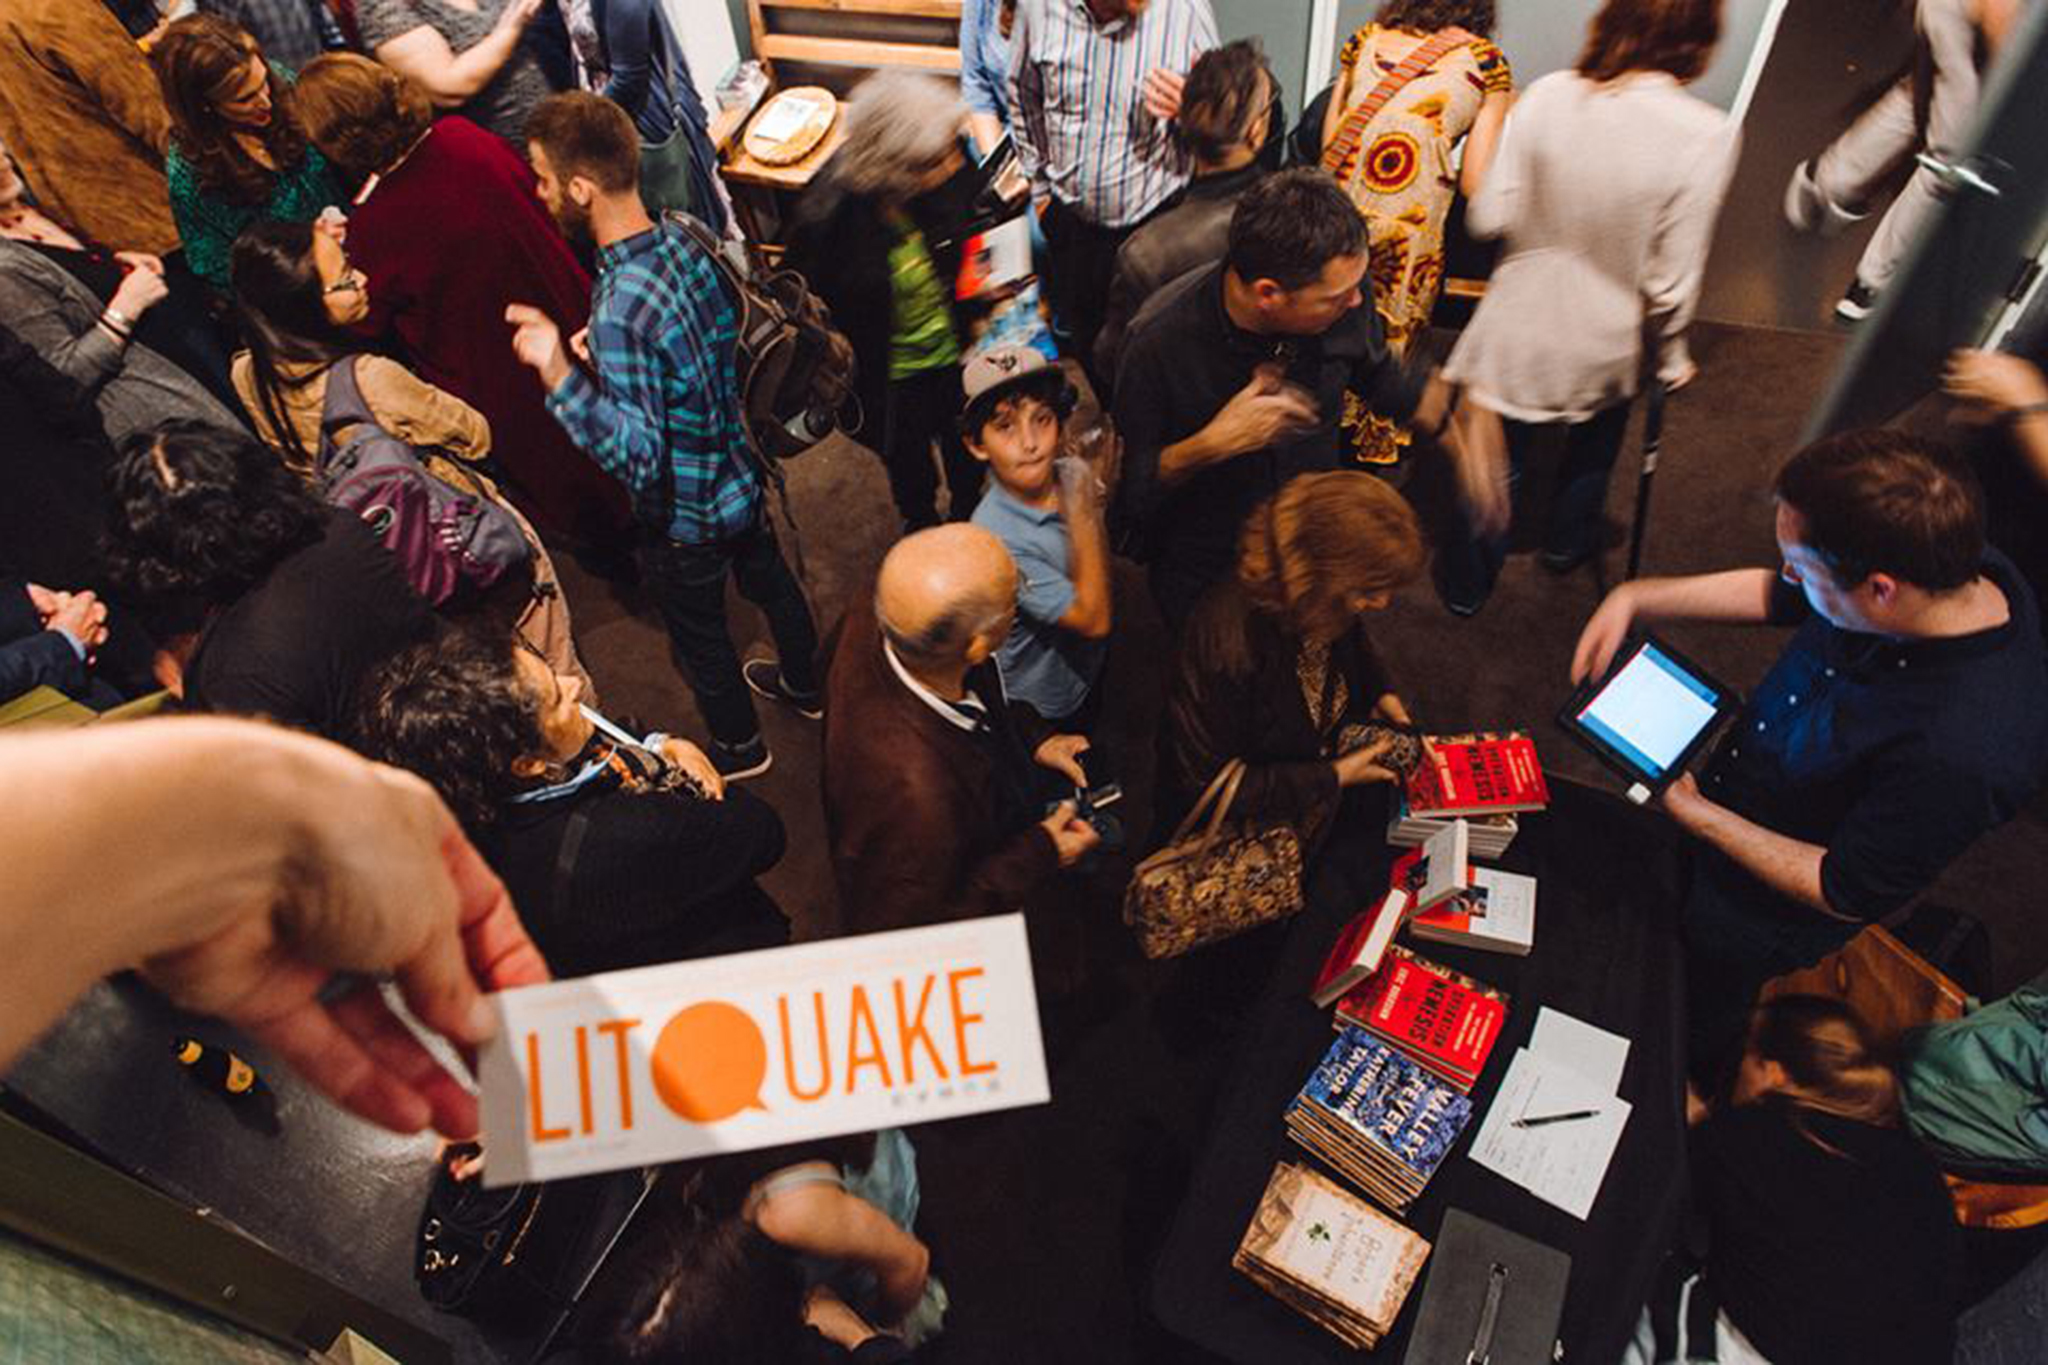 Save the date: Litquake brings major authors (and parties) to San Francisco this fall